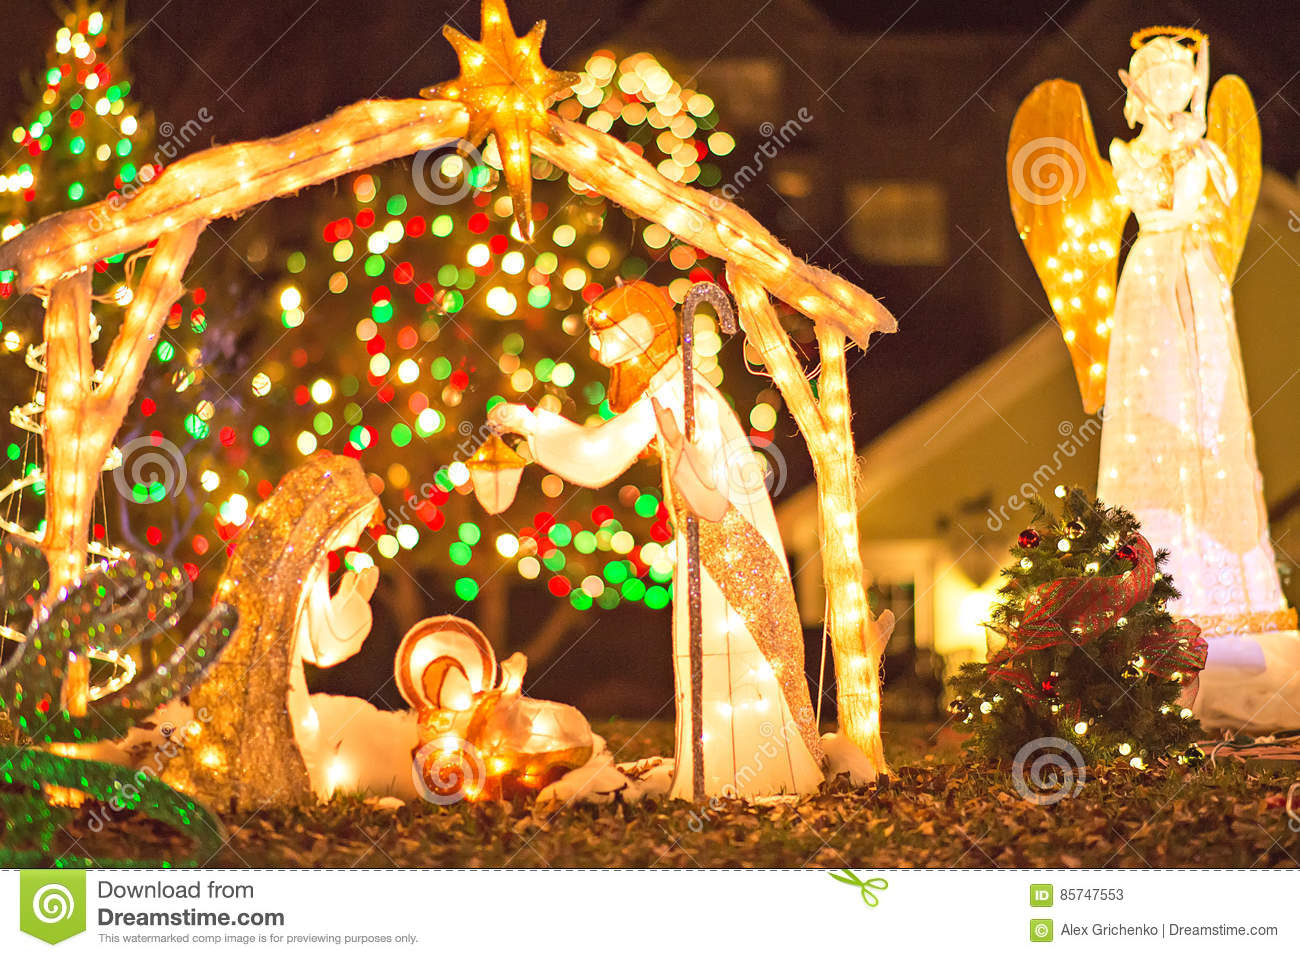 download outdoor christmas decorations at christmas town usa stock image image of light carolina - Christmas Town Decorations